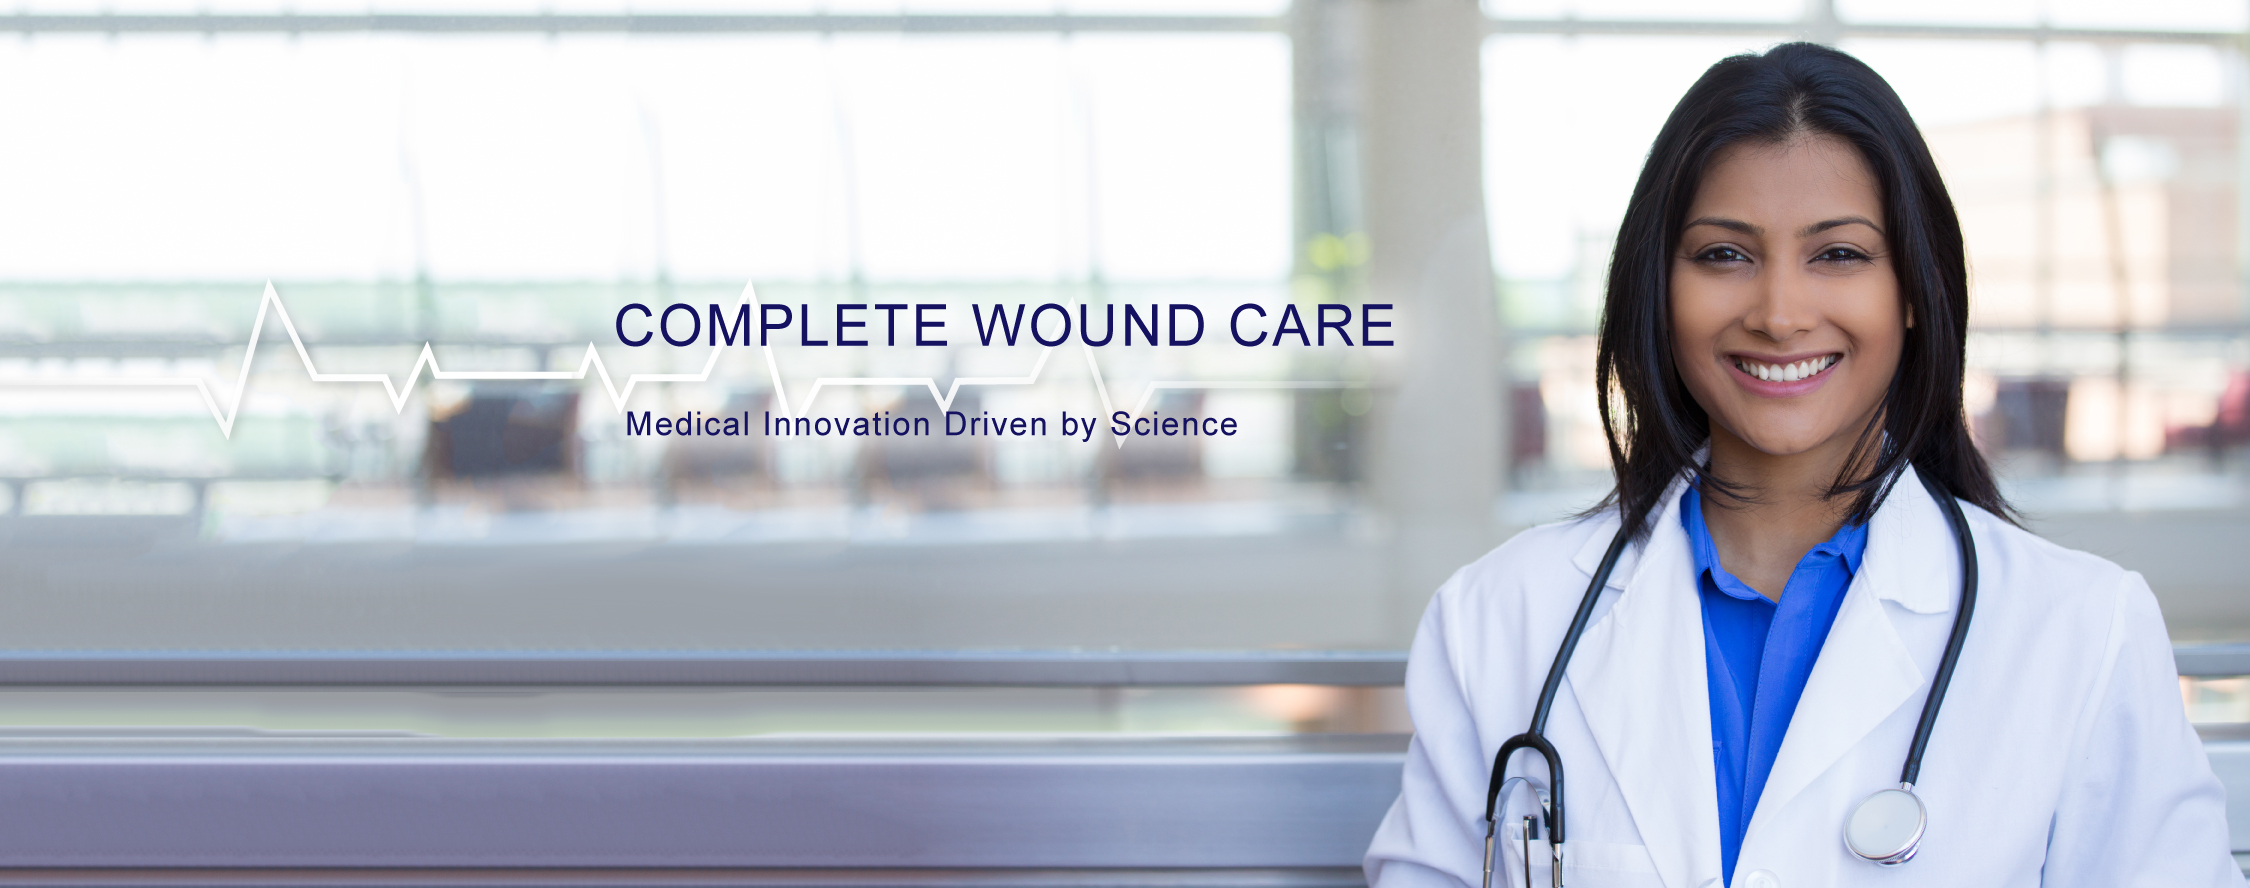 Complete Wound Care - Medical Innovation Driven by Science